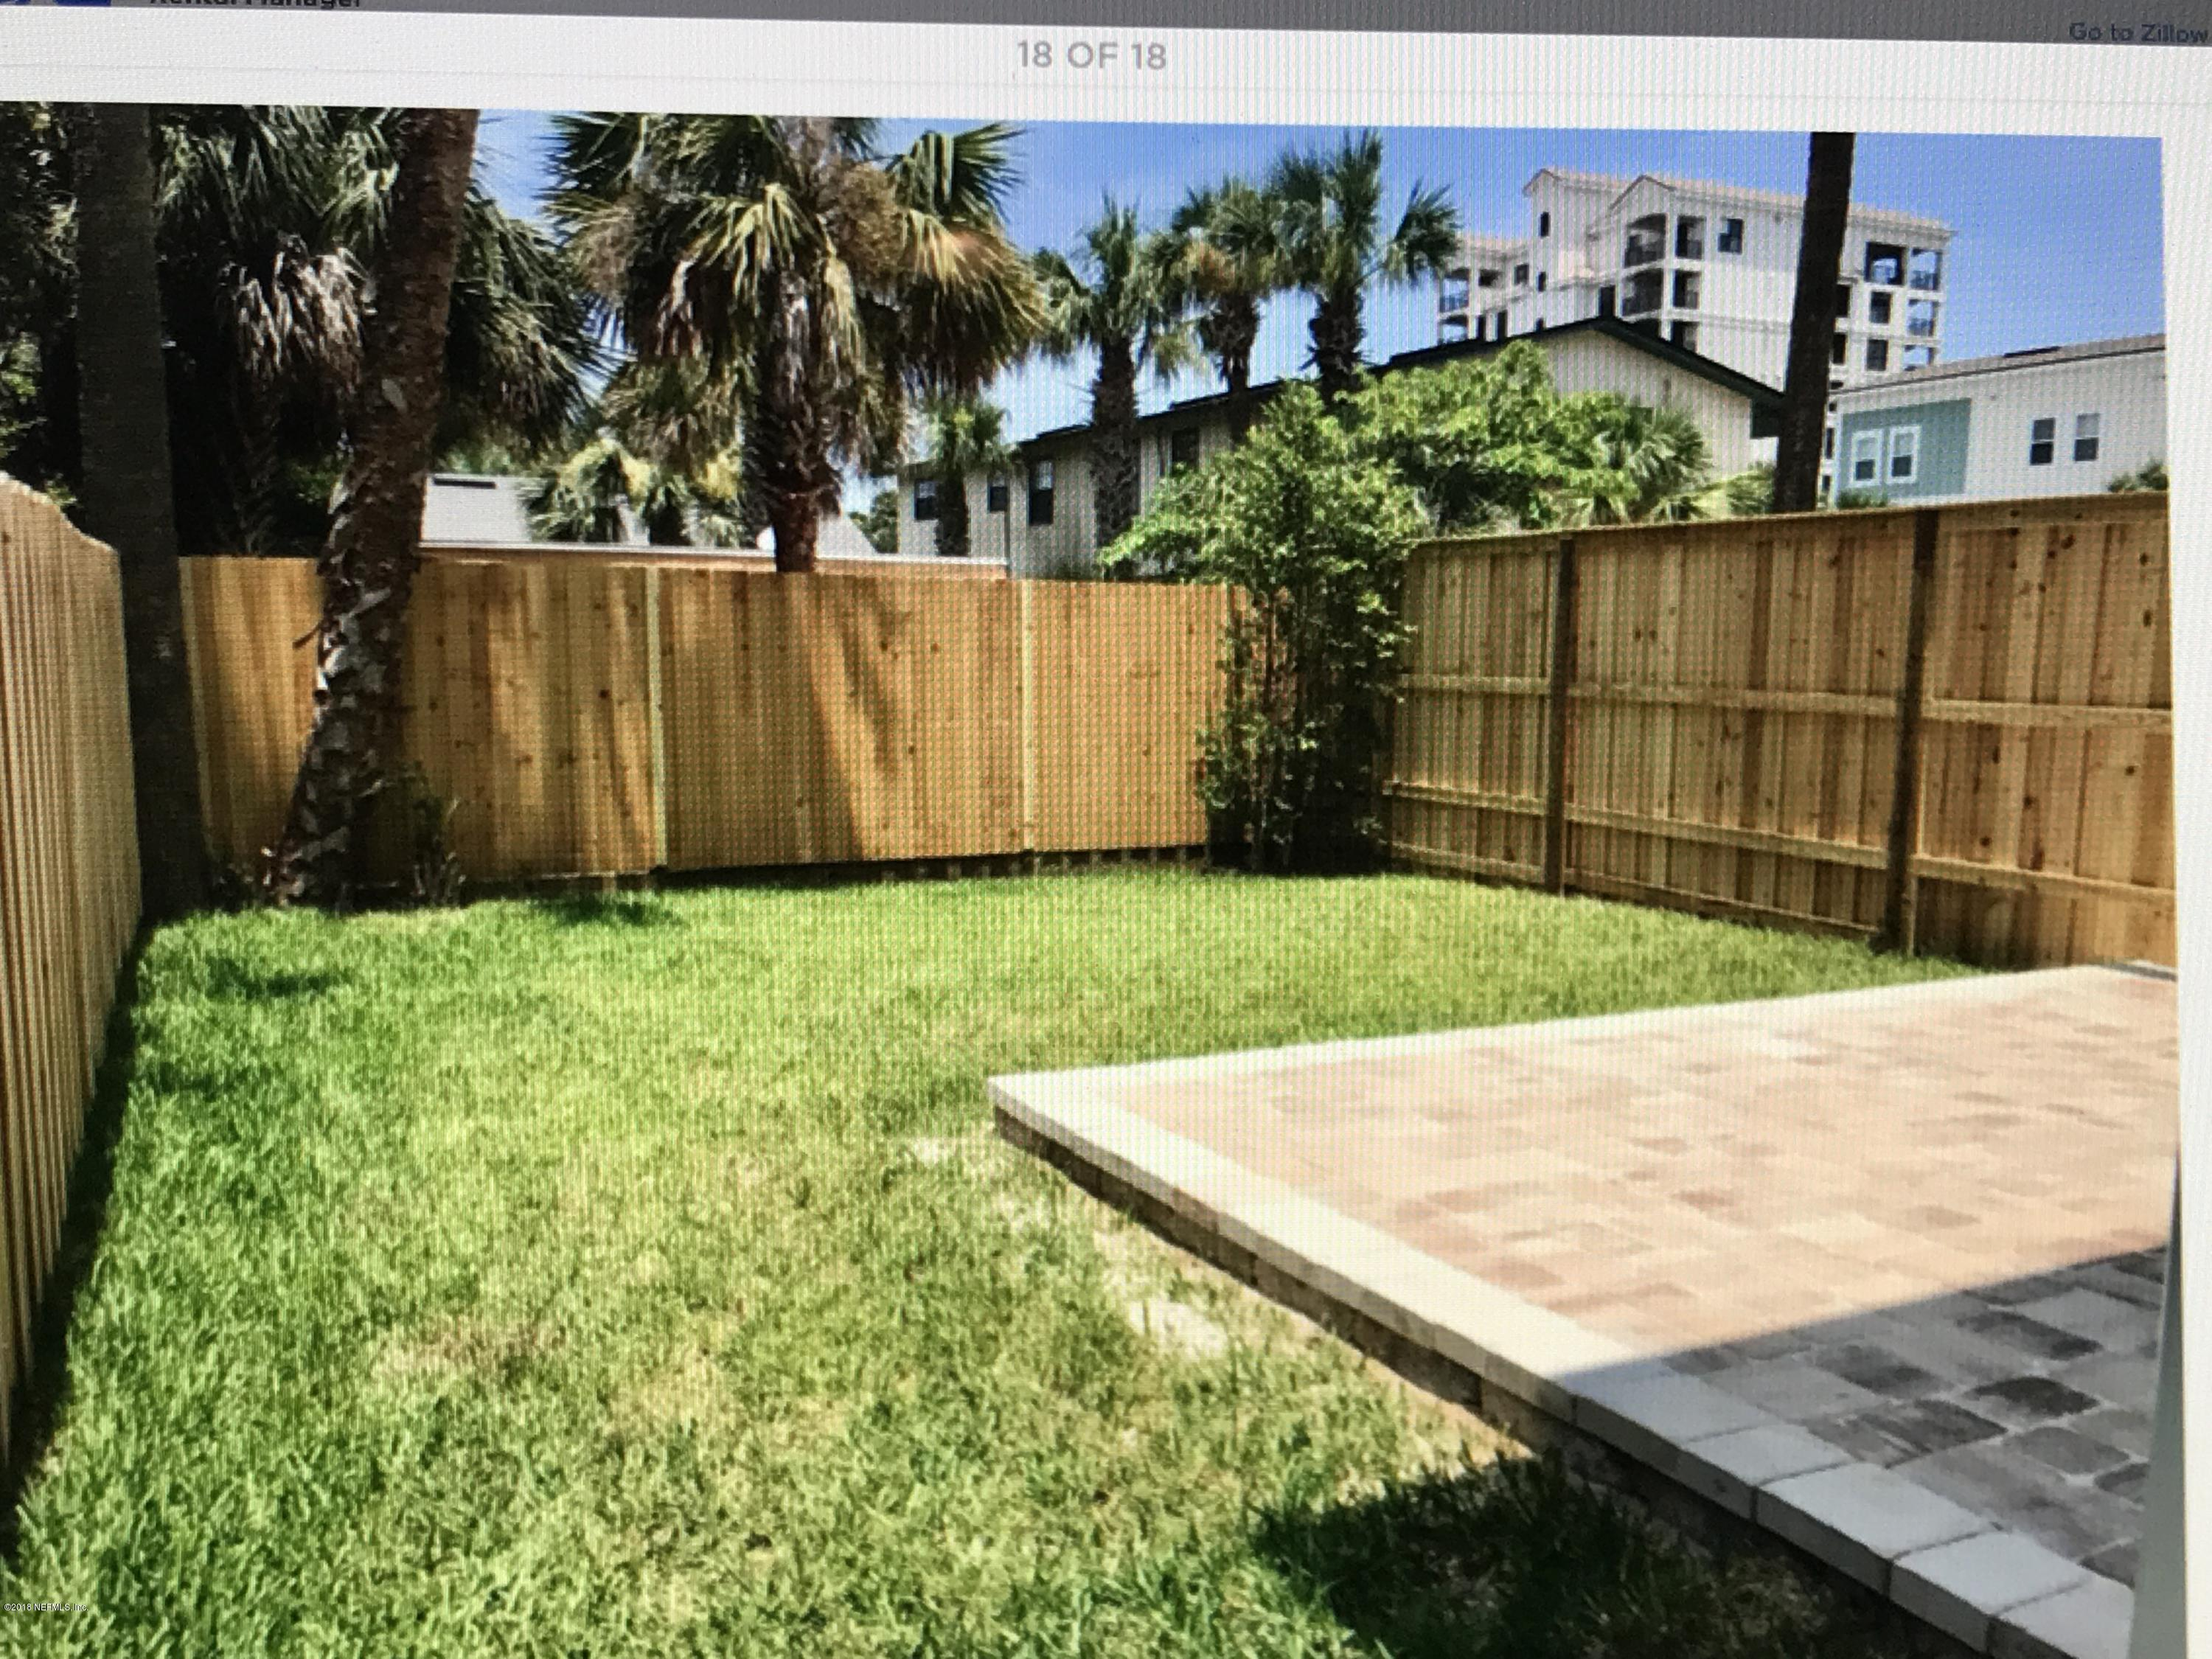 231 10TH, JACKSONVILLE BEACH, FLORIDA 32250, 3 Bedrooms Bedrooms, ,2 BathroomsBathrooms,Residential - townhome,For sale,10TH,964360